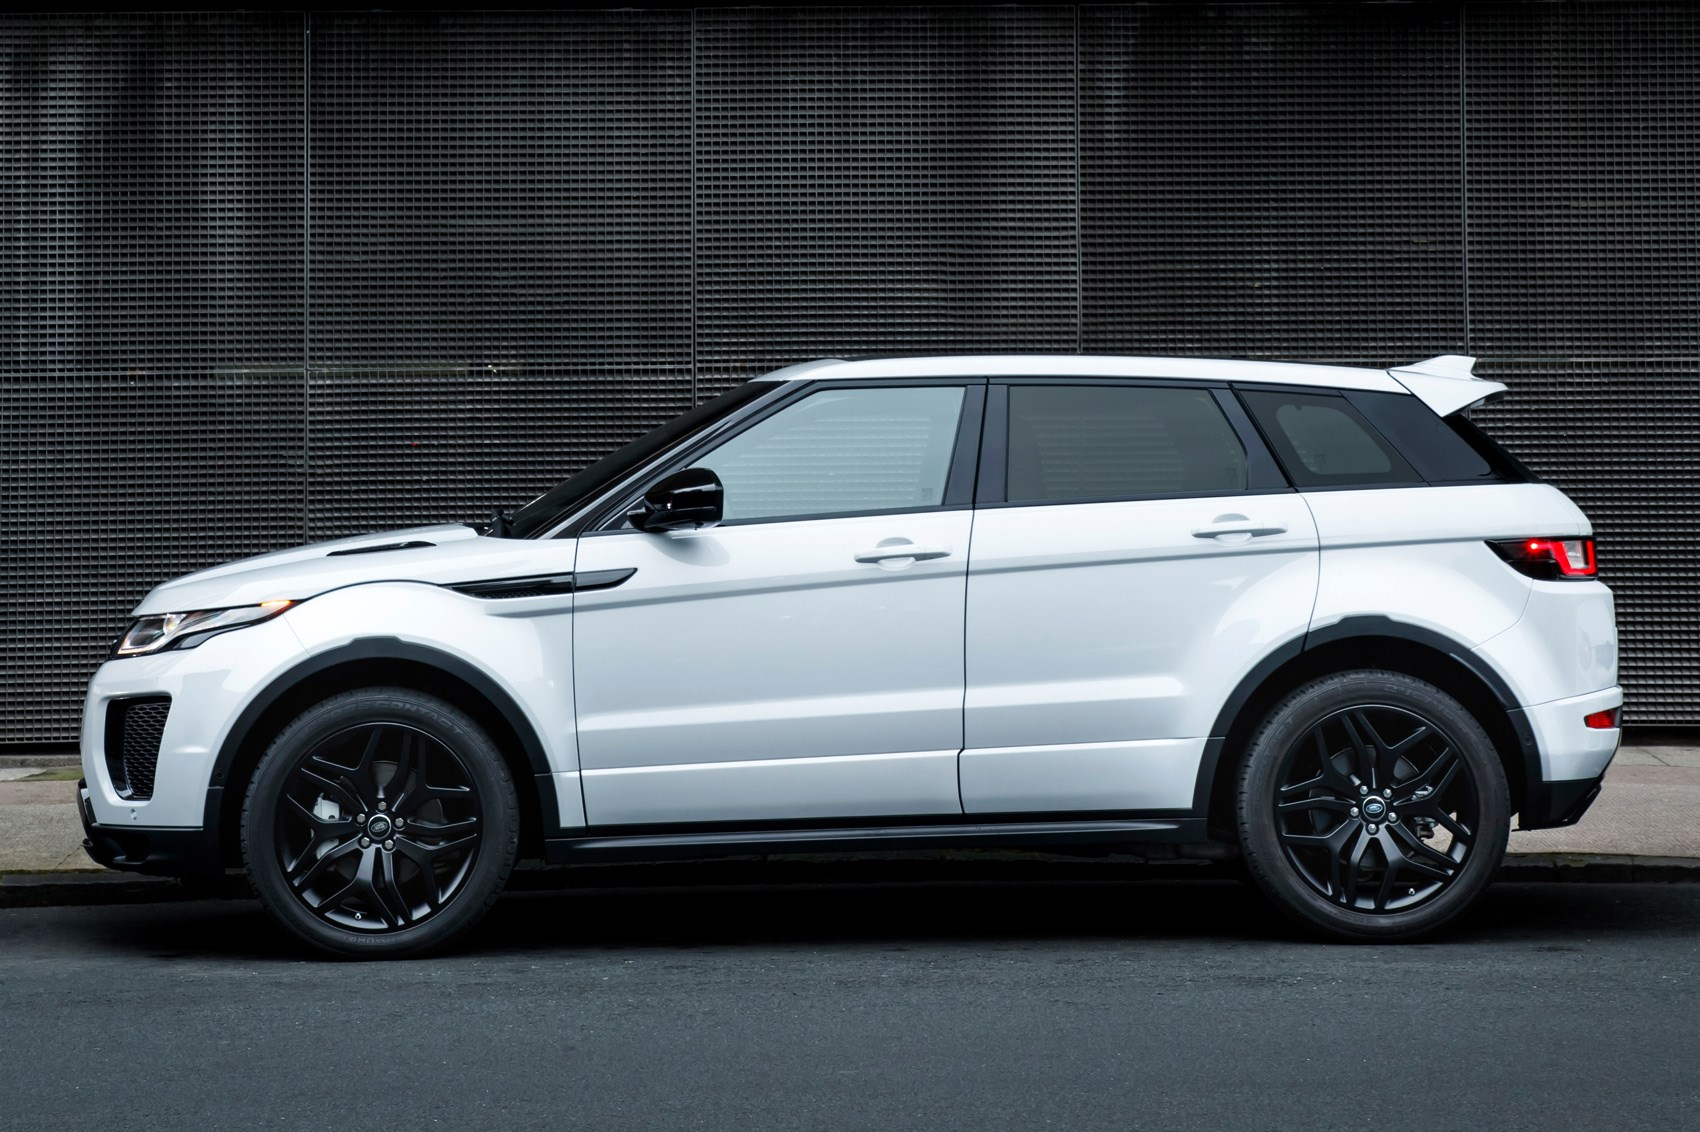 Hot Evoque Anyone? Land Rover Introduces Performance